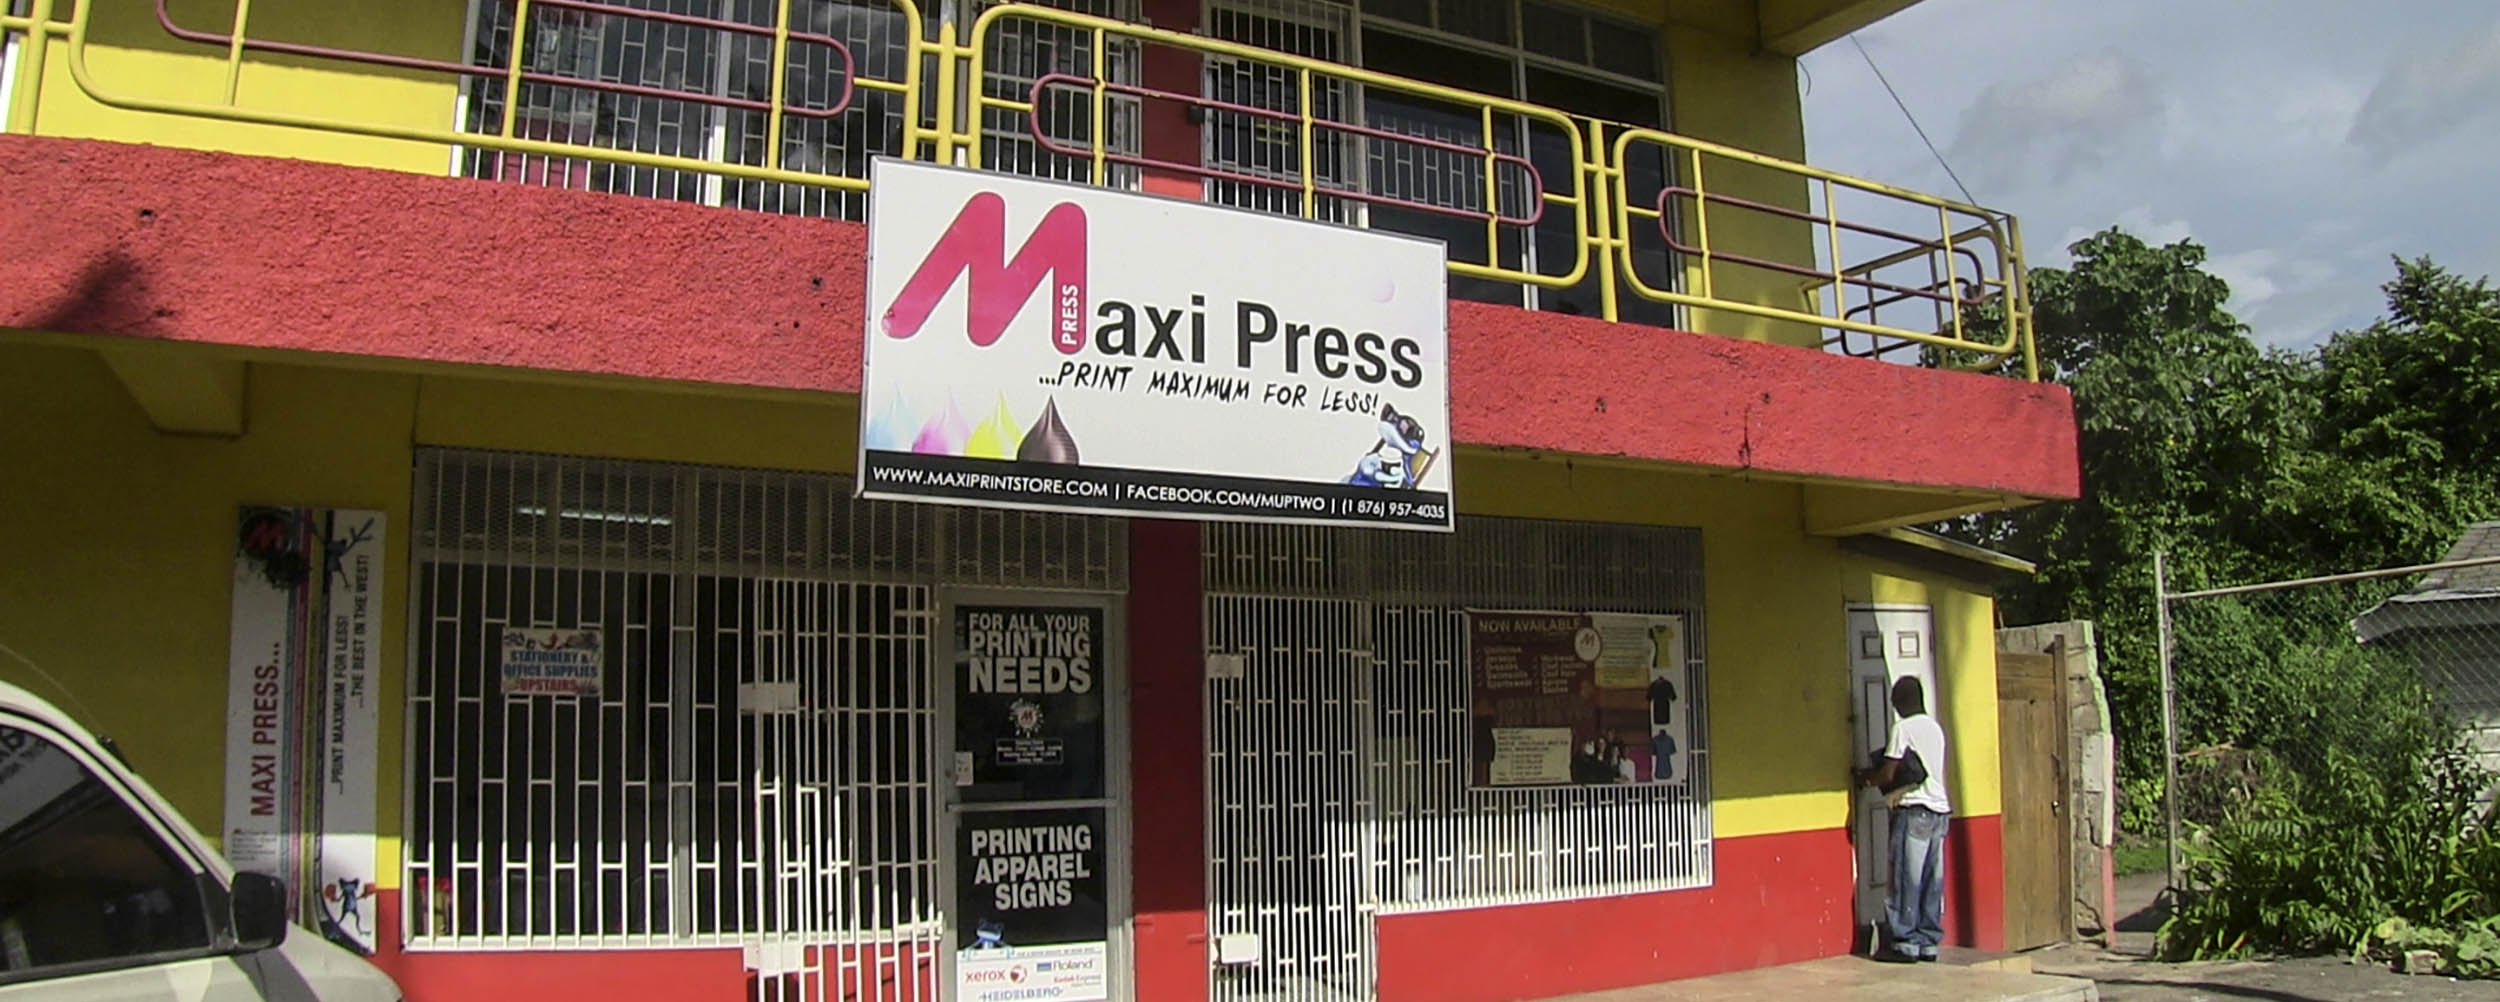 Maxi Press - Kings Plaza - West End, Negril Jamaica